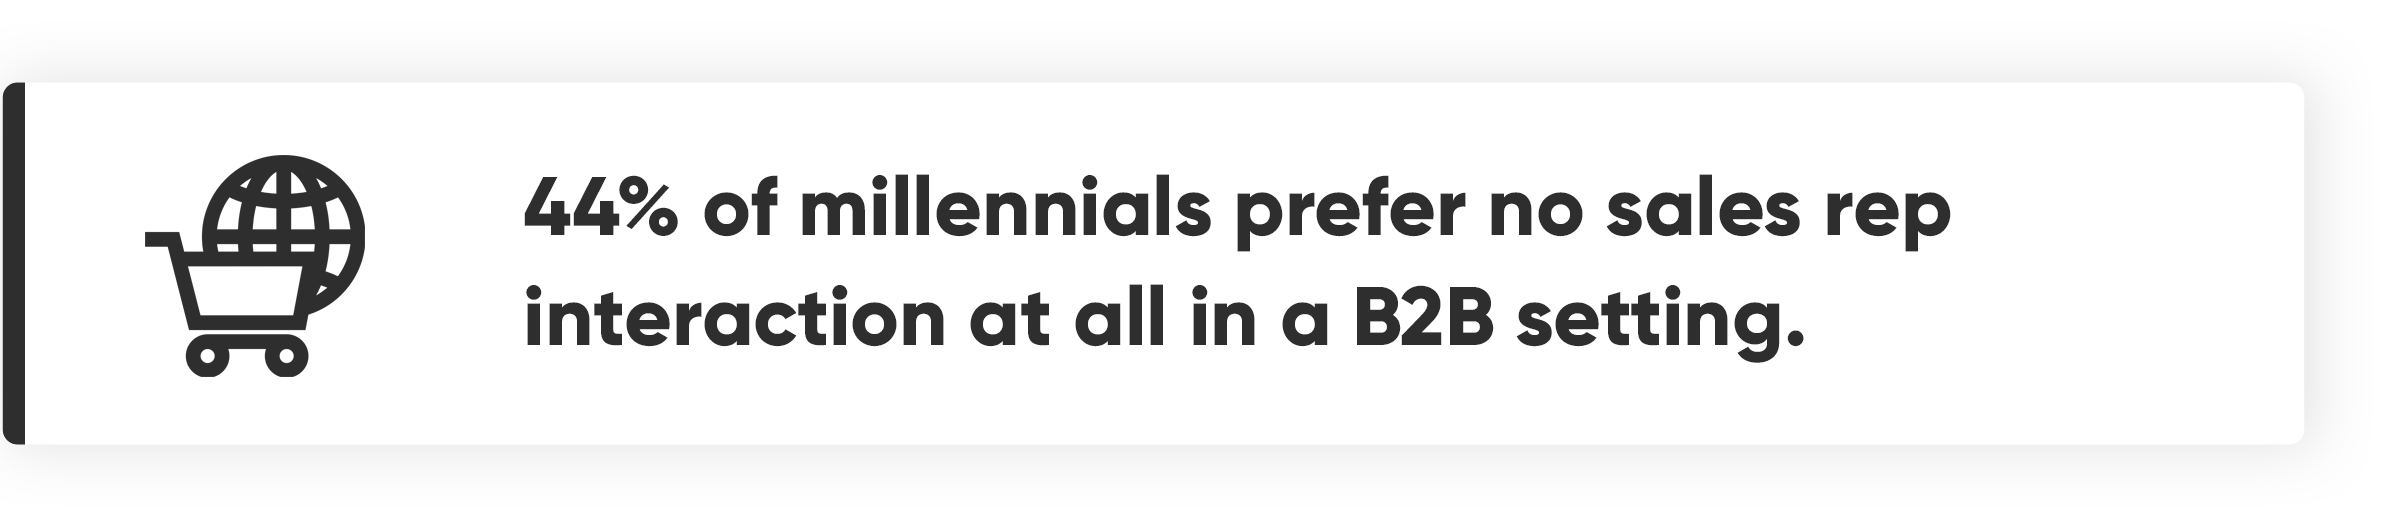 44% of millennials prefer no sales rep interaction at all in a B2B setting.